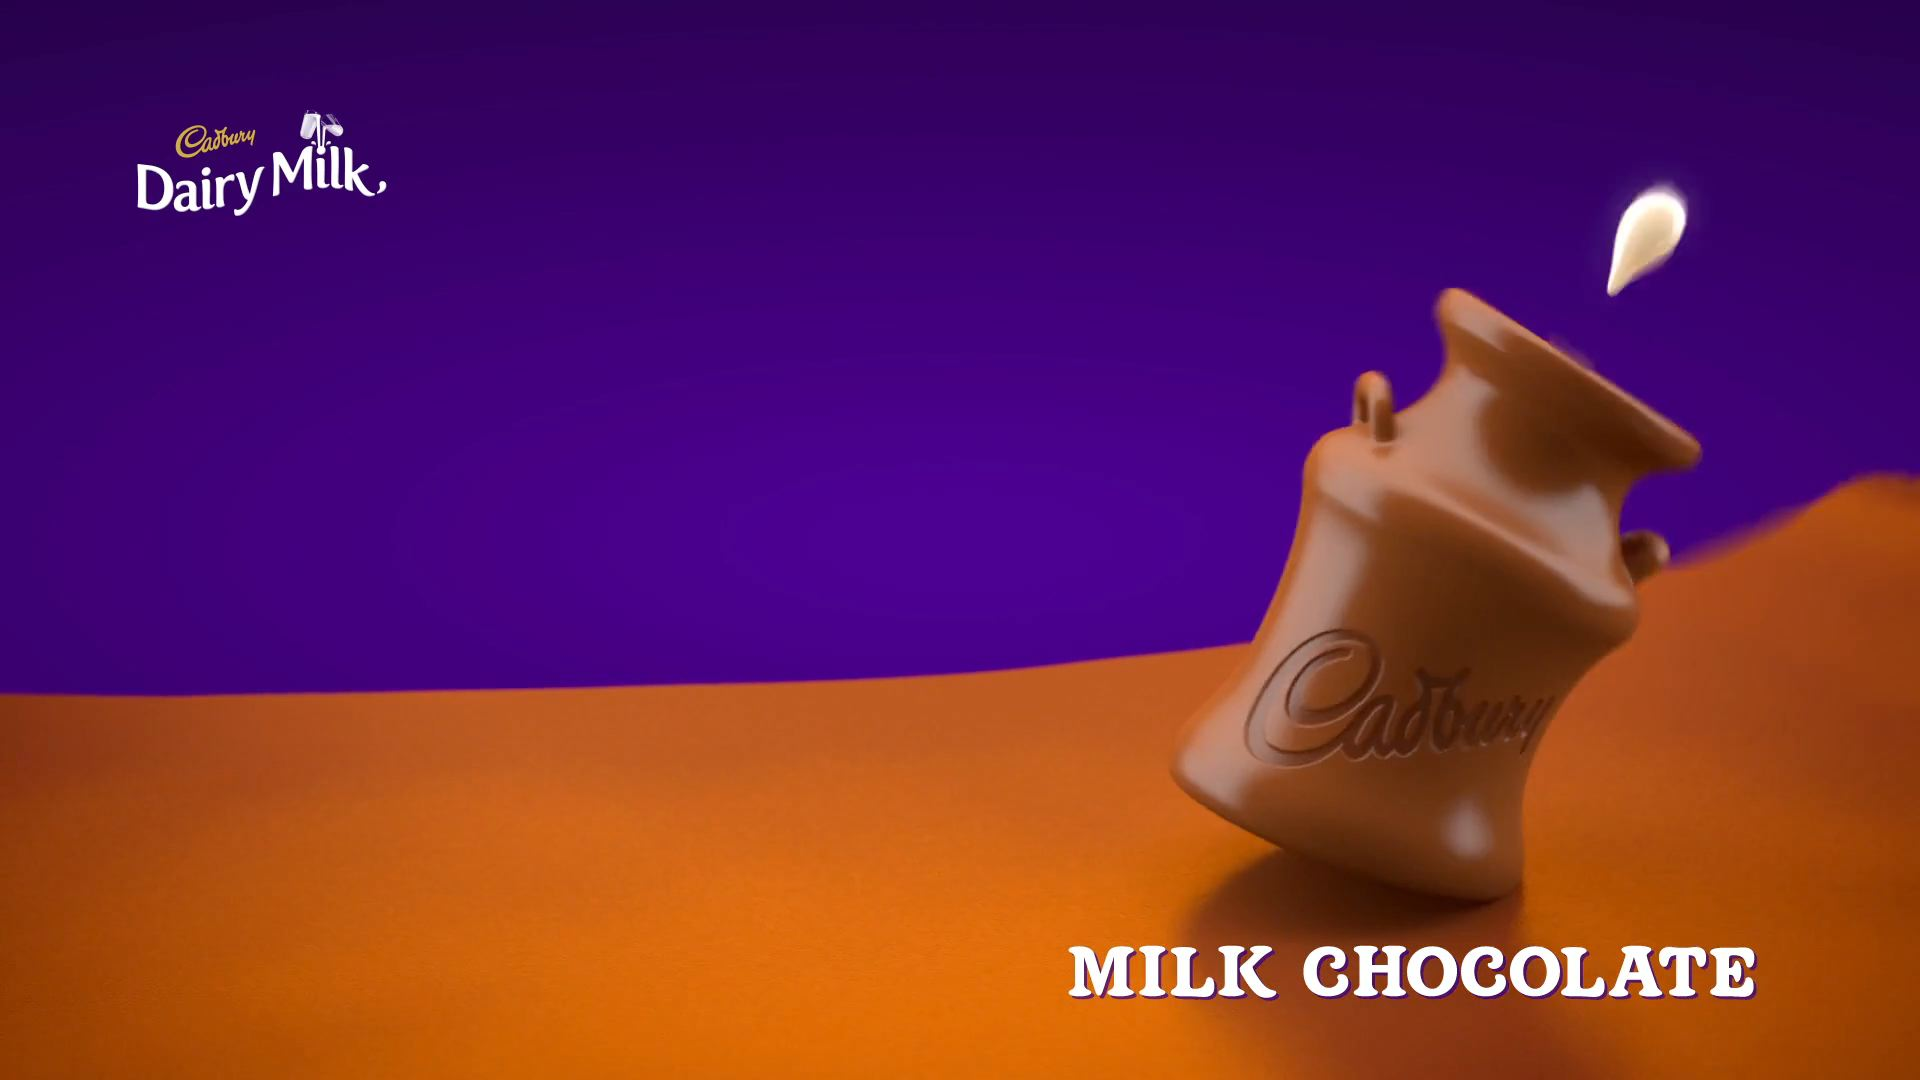 3D animated milk urn made of chocolate